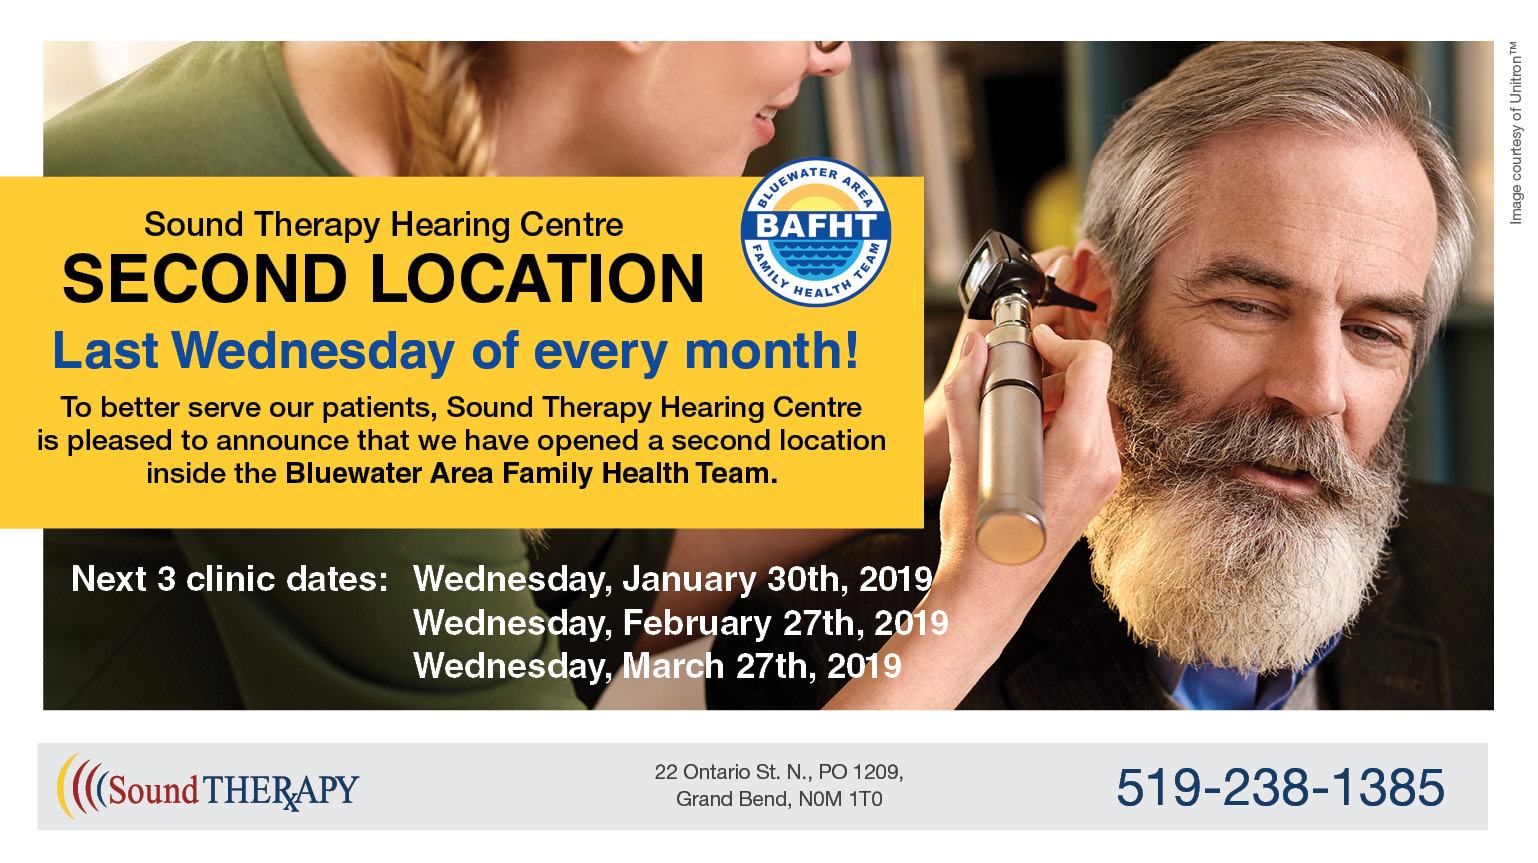 Sound Therapy Hearing Centre at BAFHT